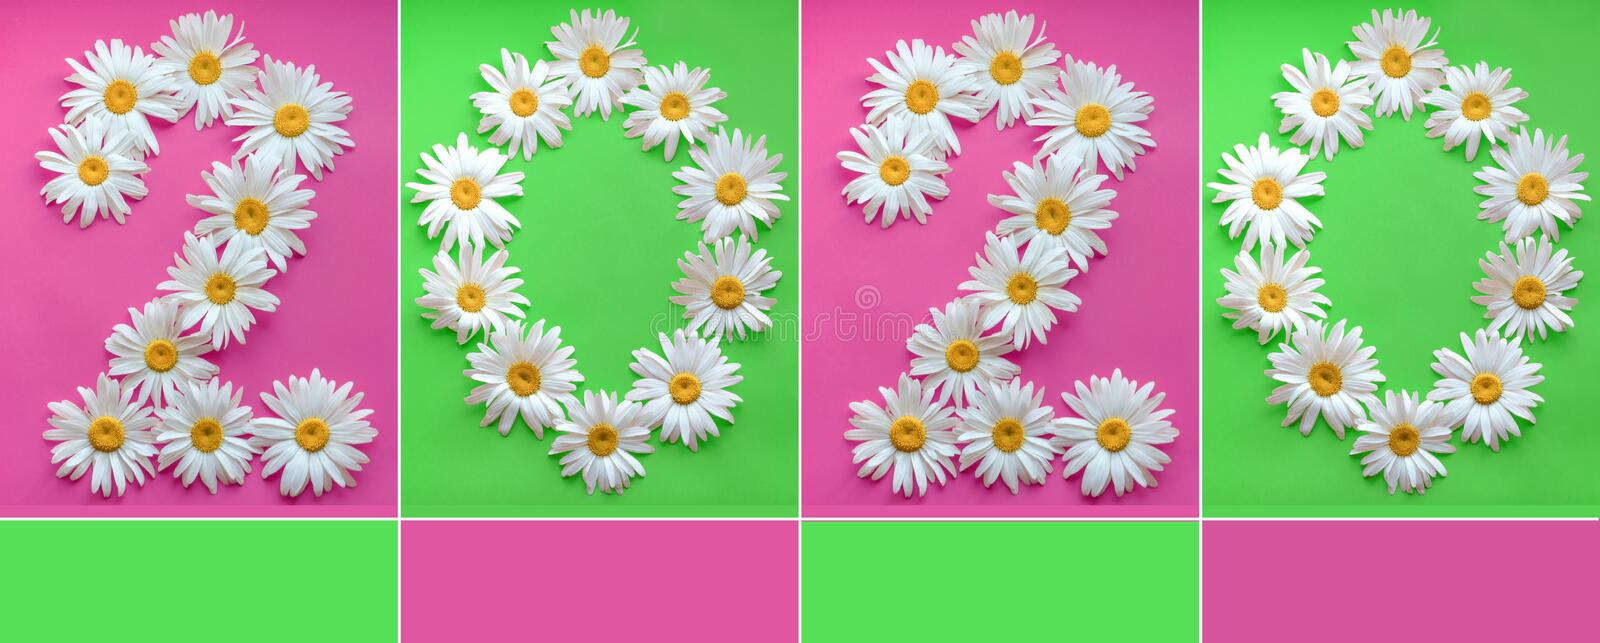 Inscription 2020 from fresh daisies on a colored background. 0, 2, arabic numeral. Happy New Year 2020. Large daisies create a. Number 2 and 0 on green and pink stock photography